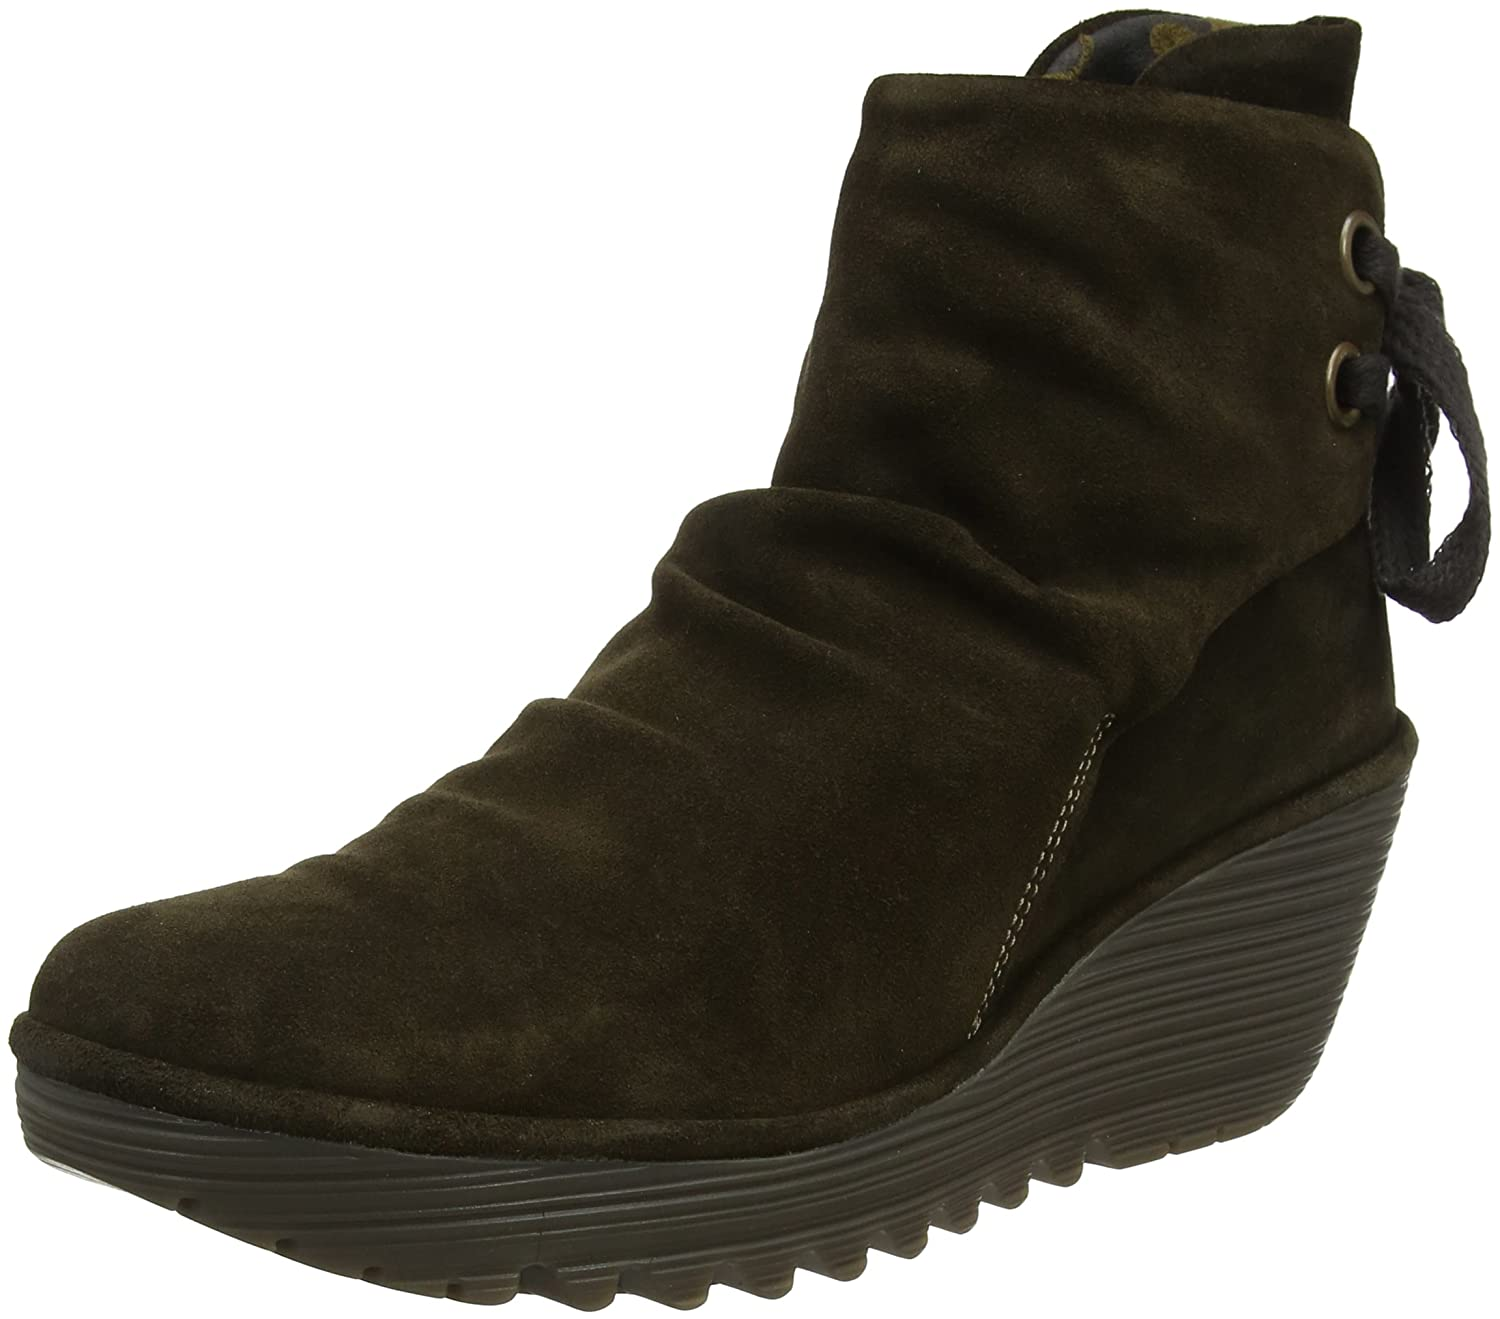 Fly London Sludge) Damen YAMA Kurzschaft Schlupfstiefel Grün (Oil Suede Sludge) London ed60ef